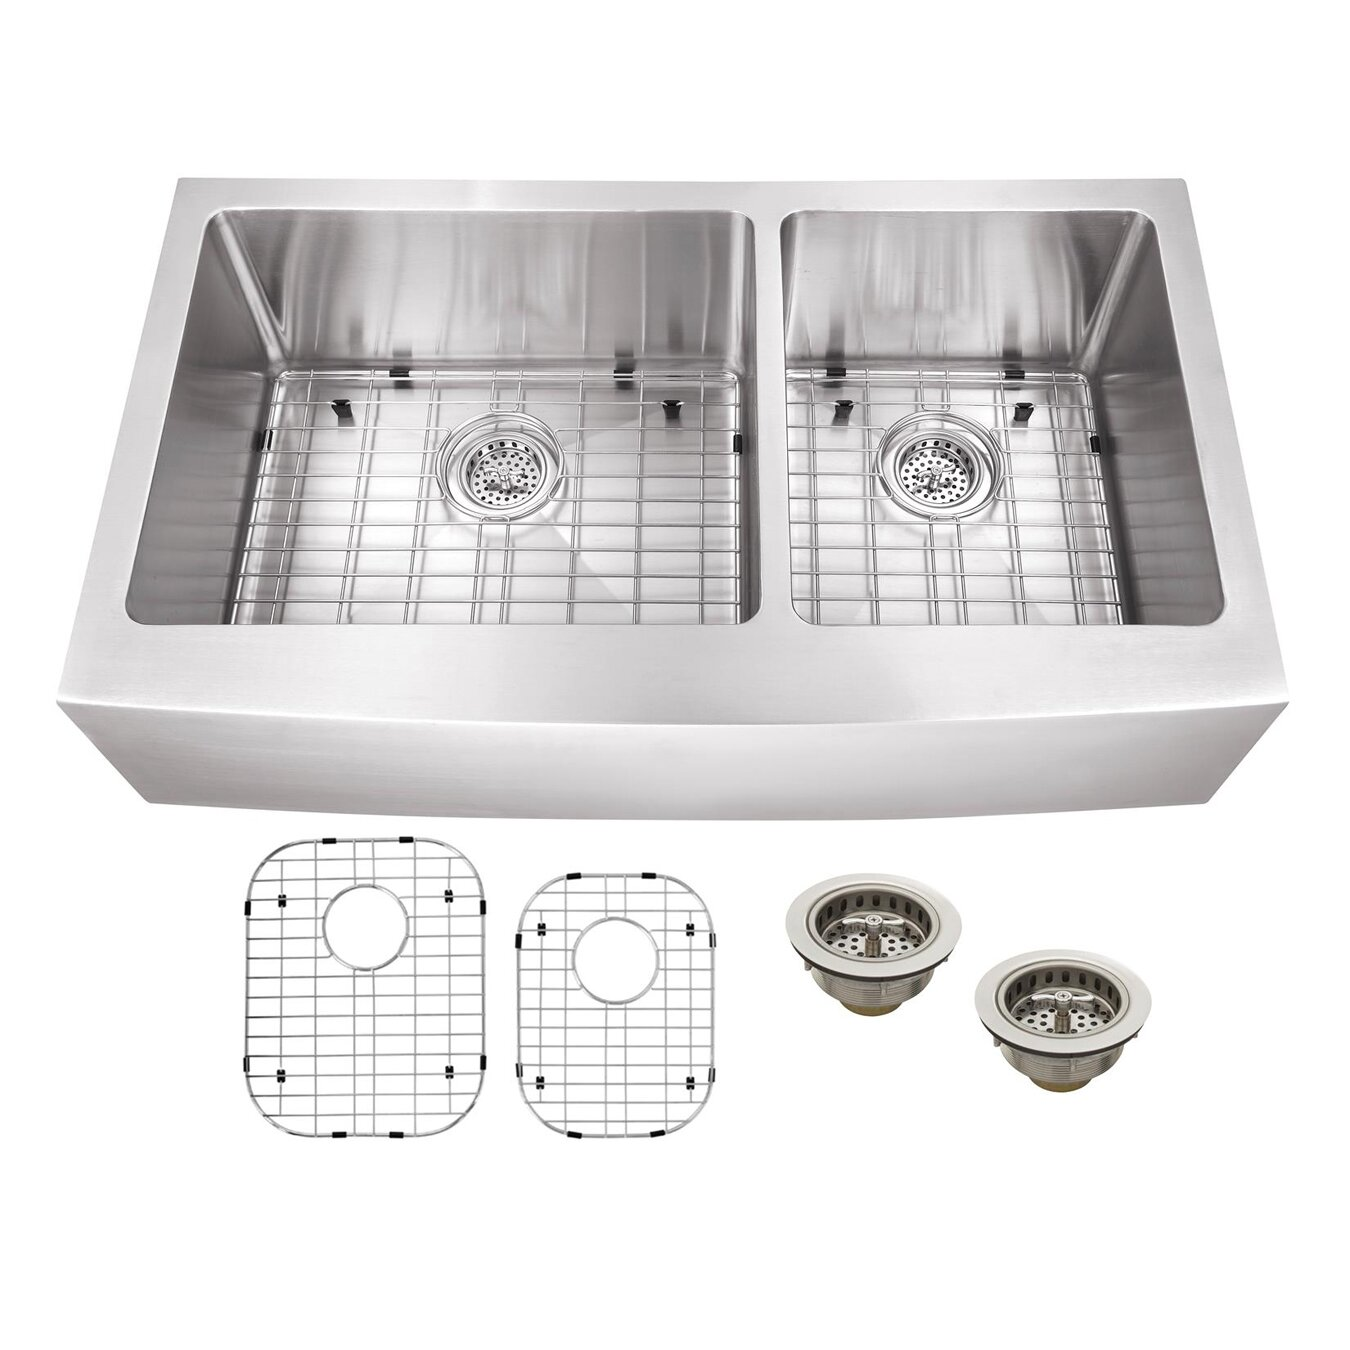 Soleil X Stainless Steel 16 Gauge Apron Front 60 40 Double Bowl Kitchen Sink